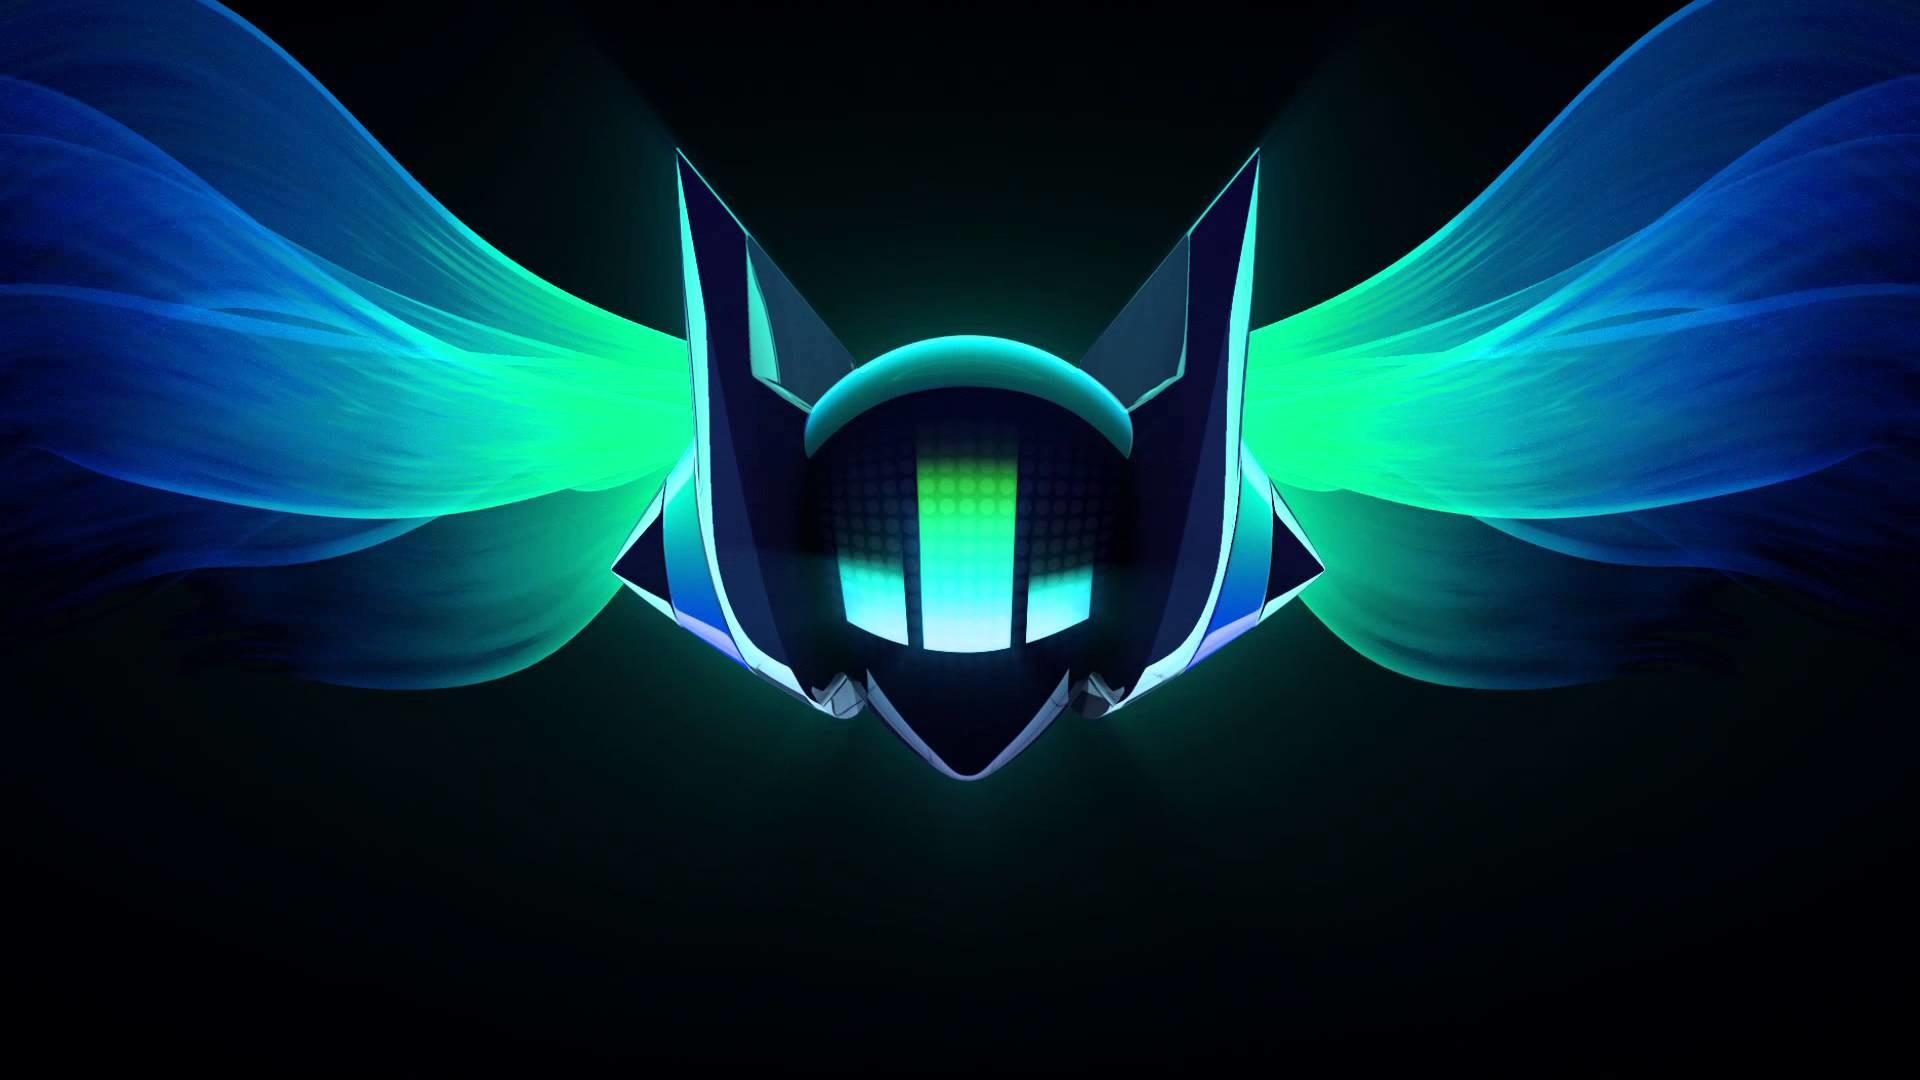 i pulled the backgrounds on all of the DJ sona teasers .